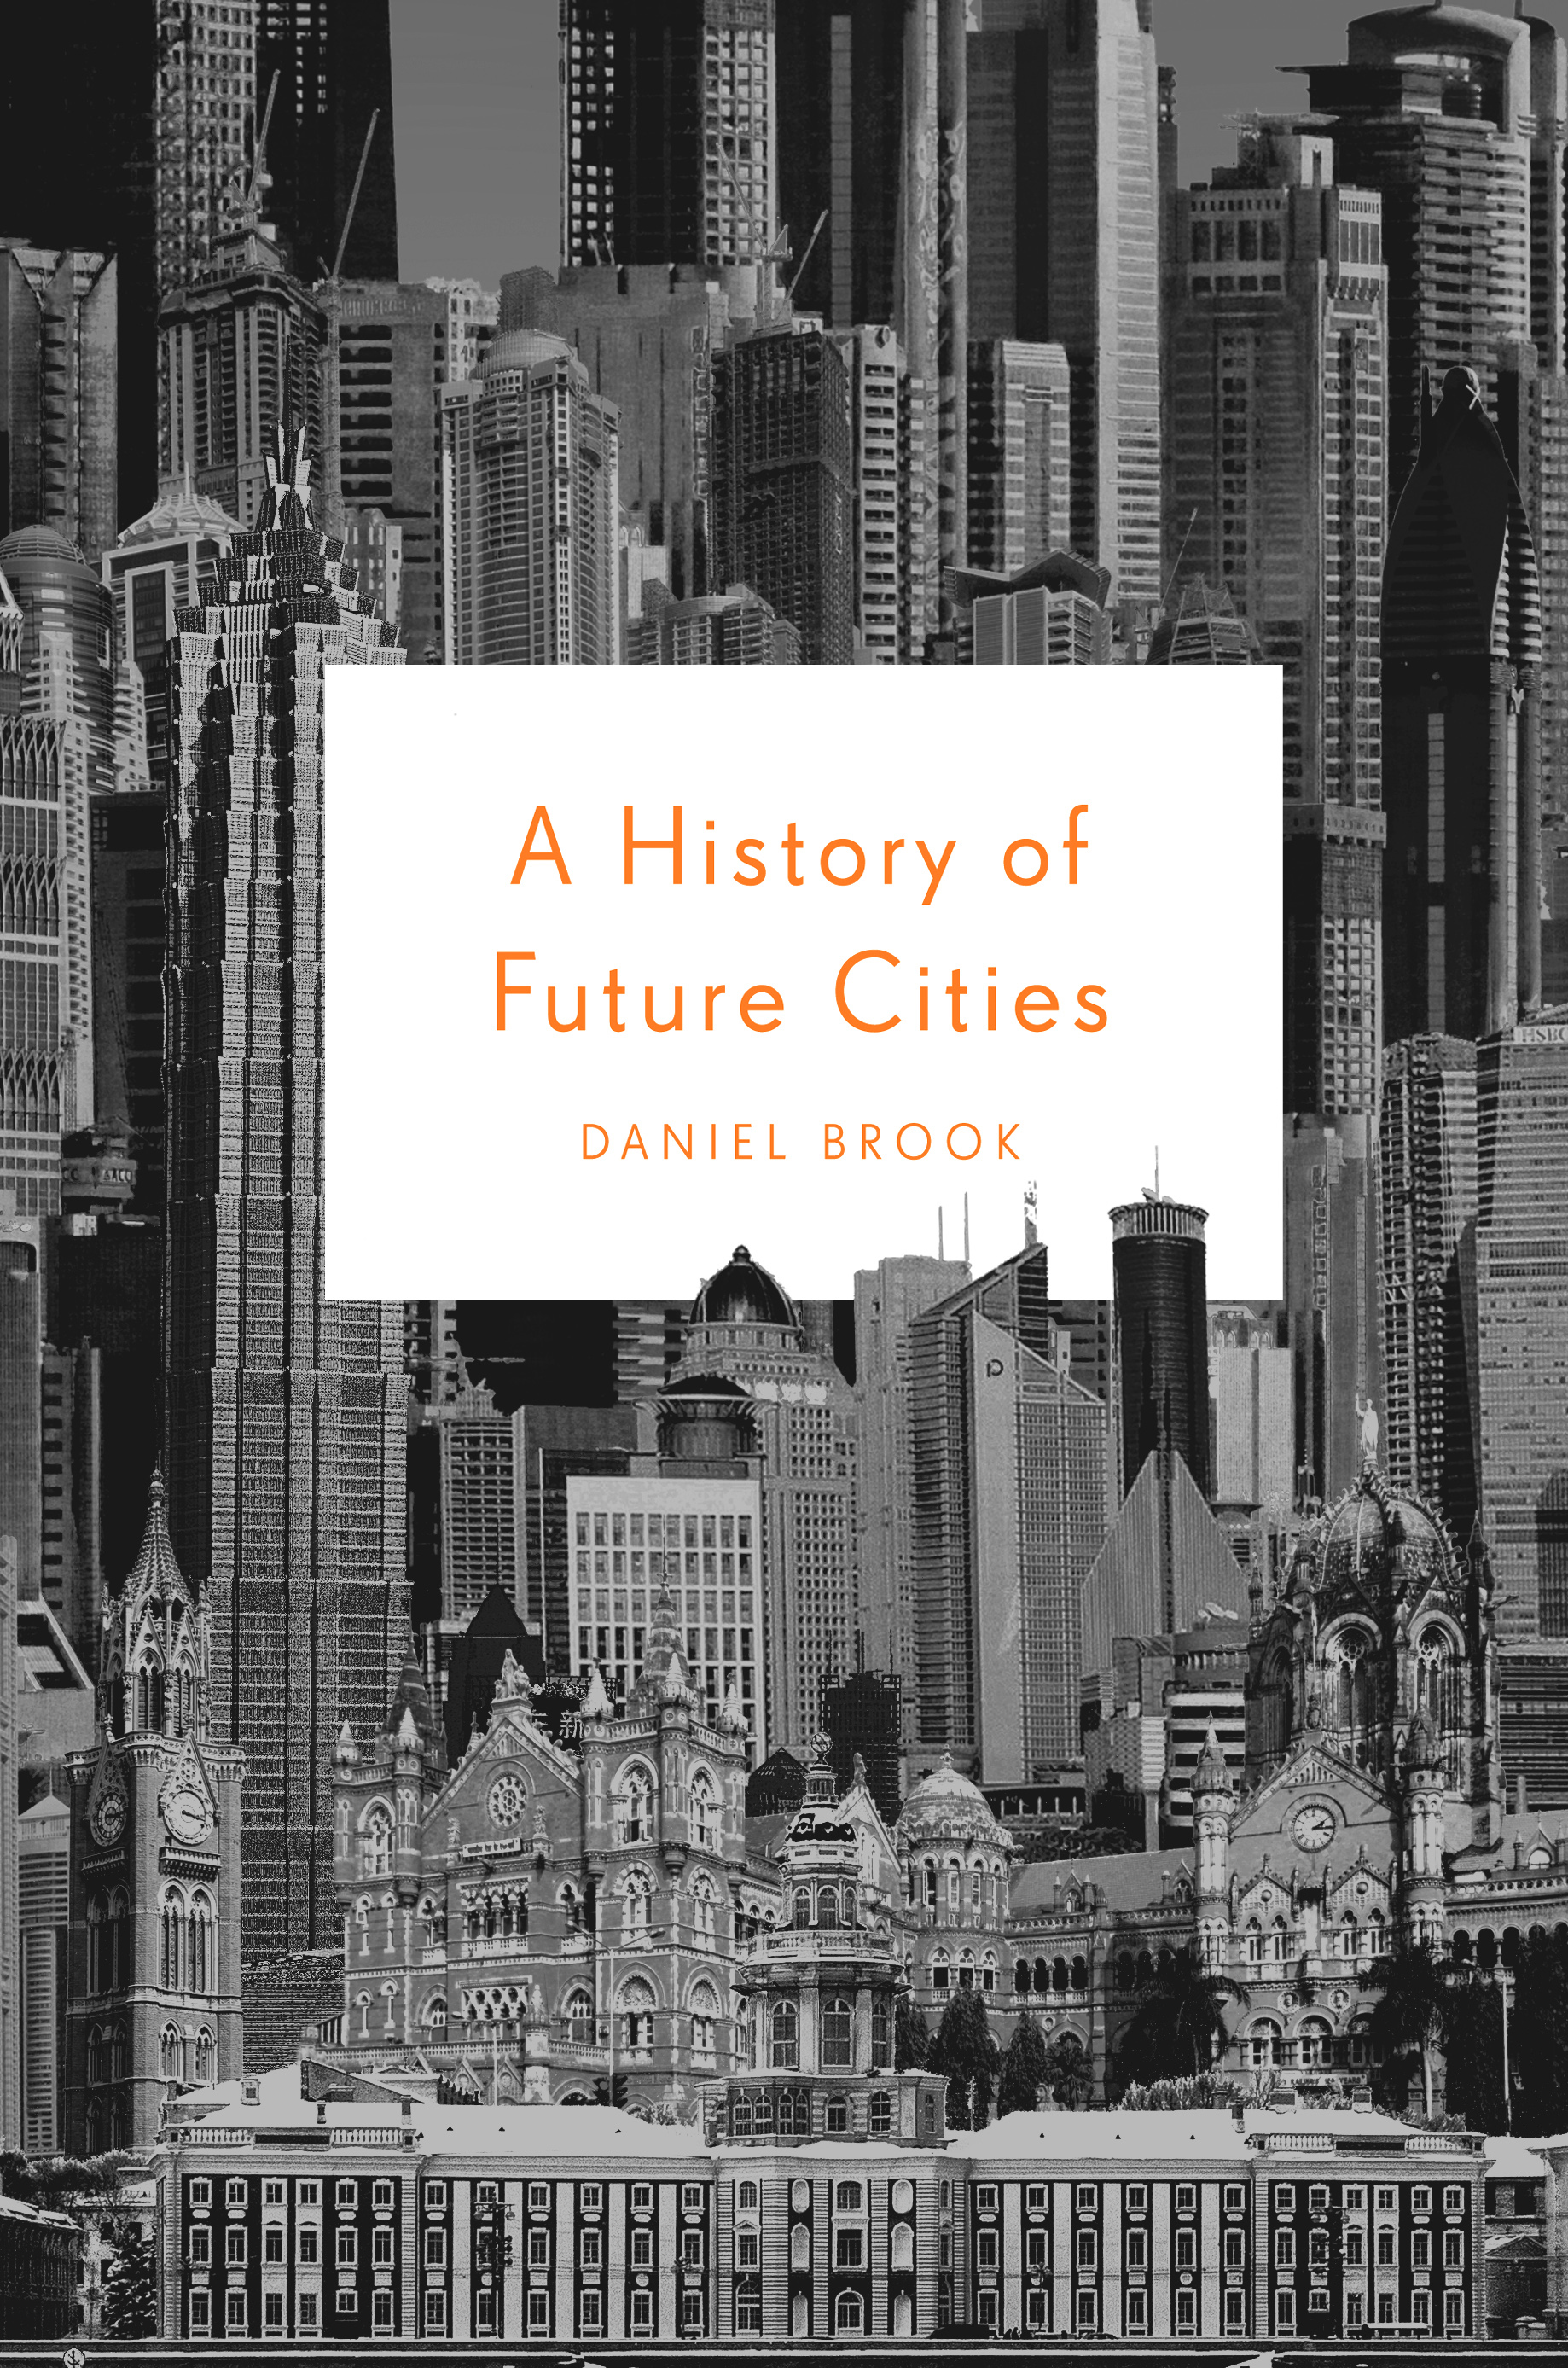 Book Launch & Discussion: A History of Future Cities by Daniel Brook